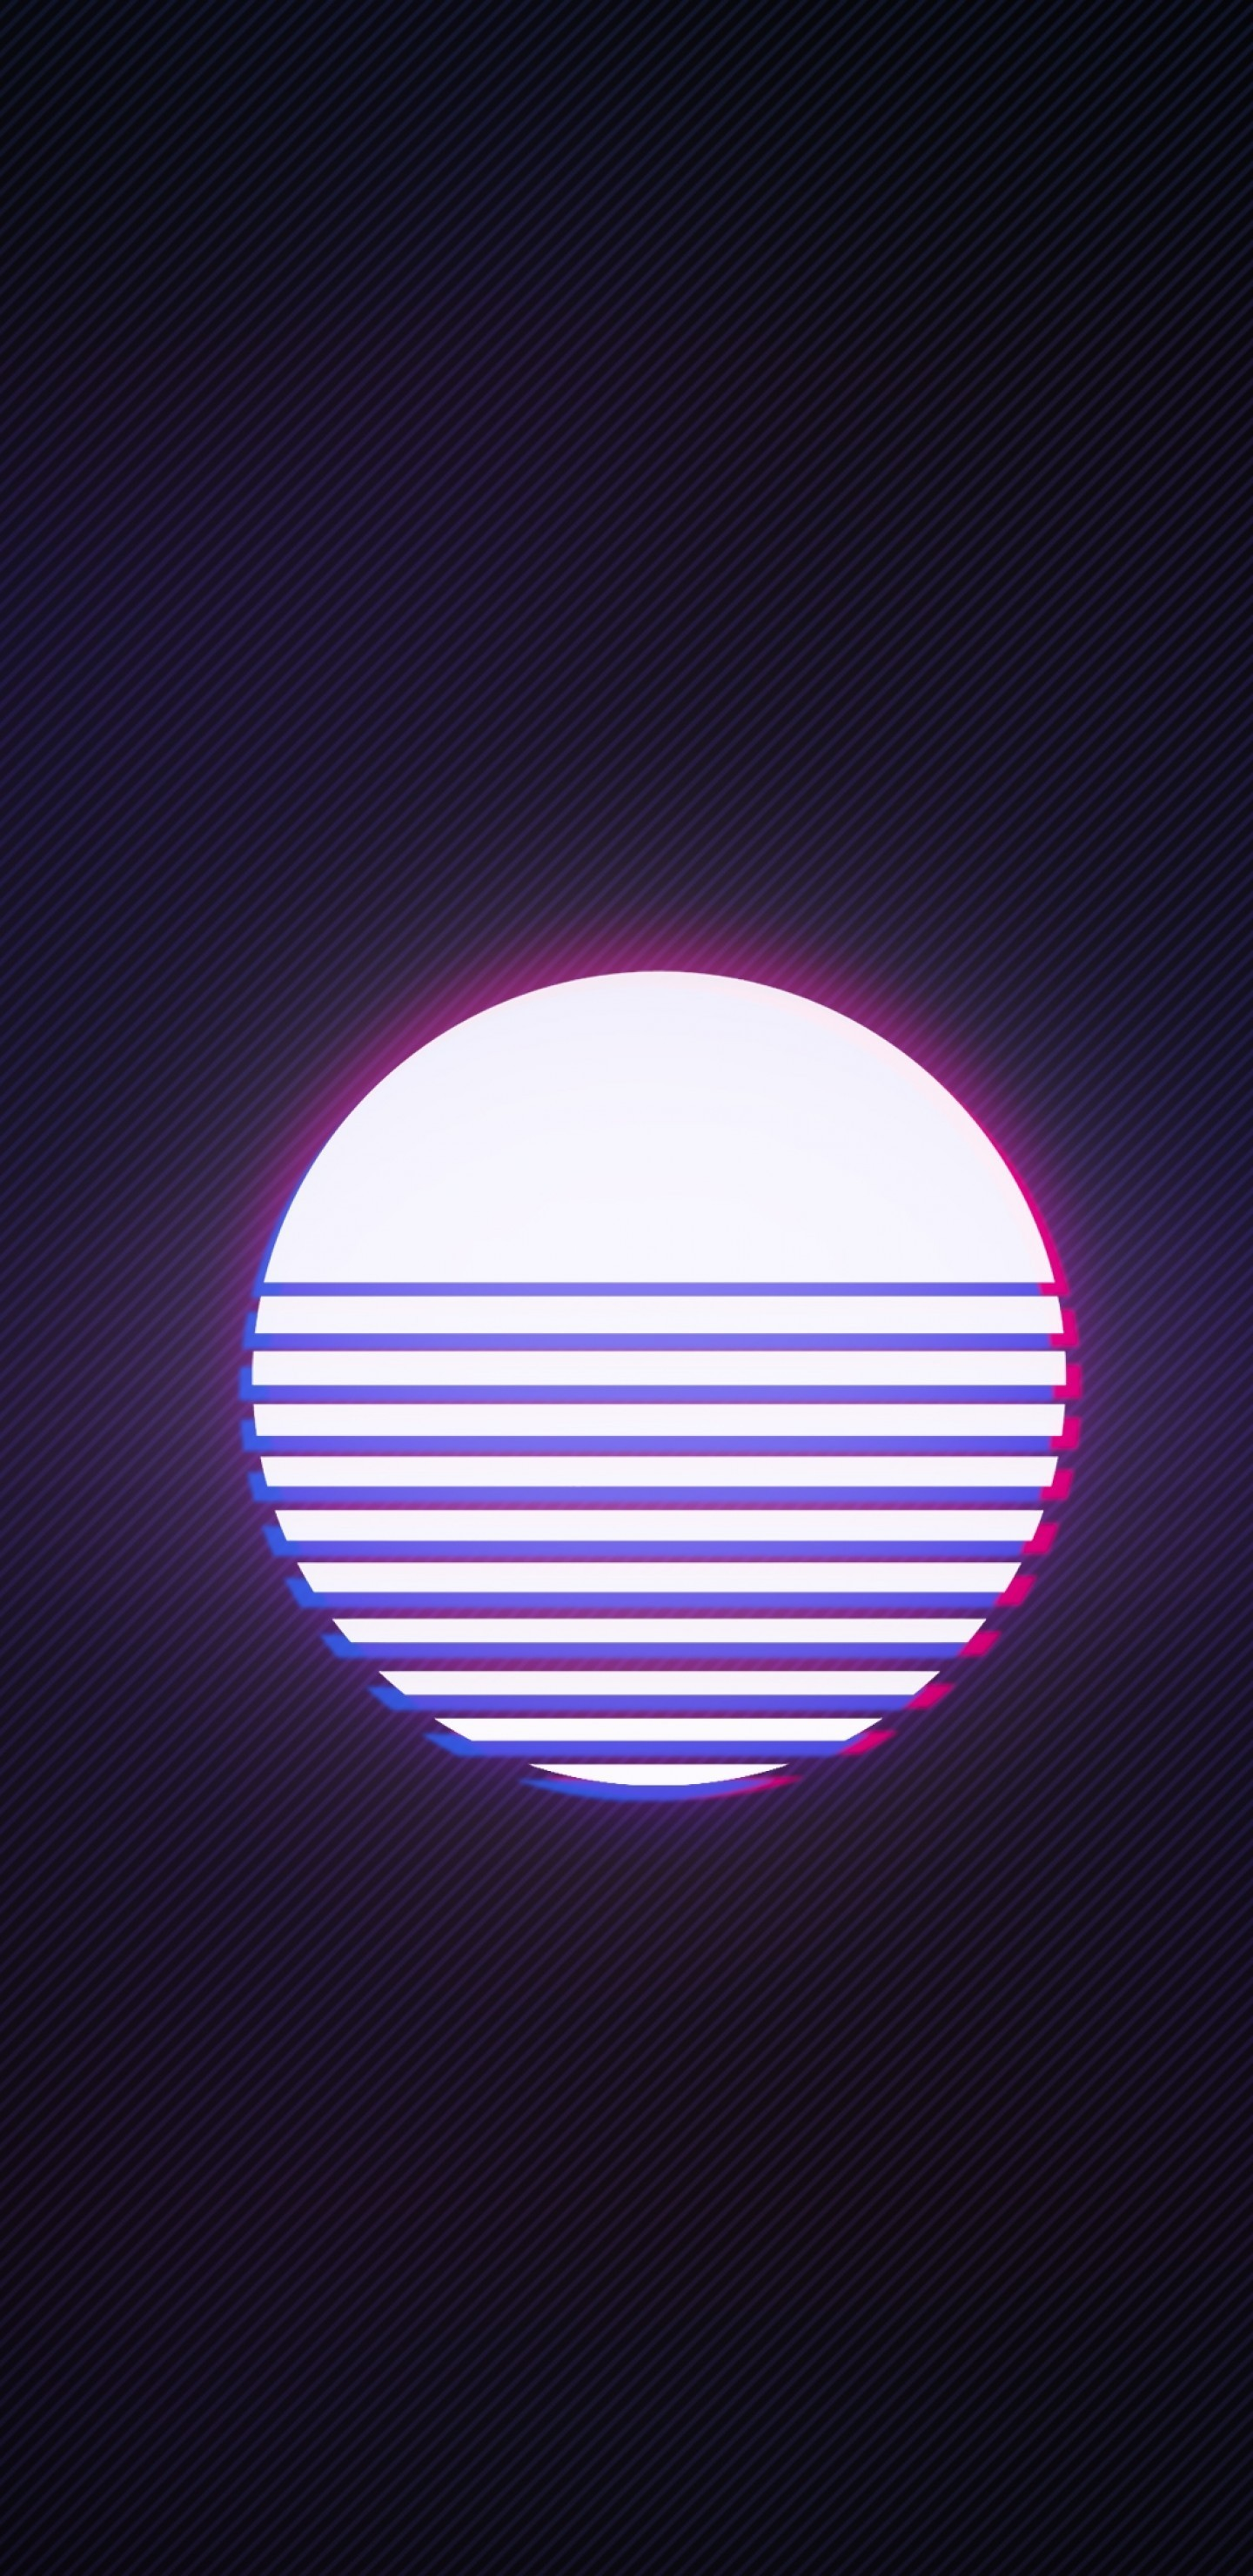 1440x2960 Sun, Retro Wave, Synthwave, Music